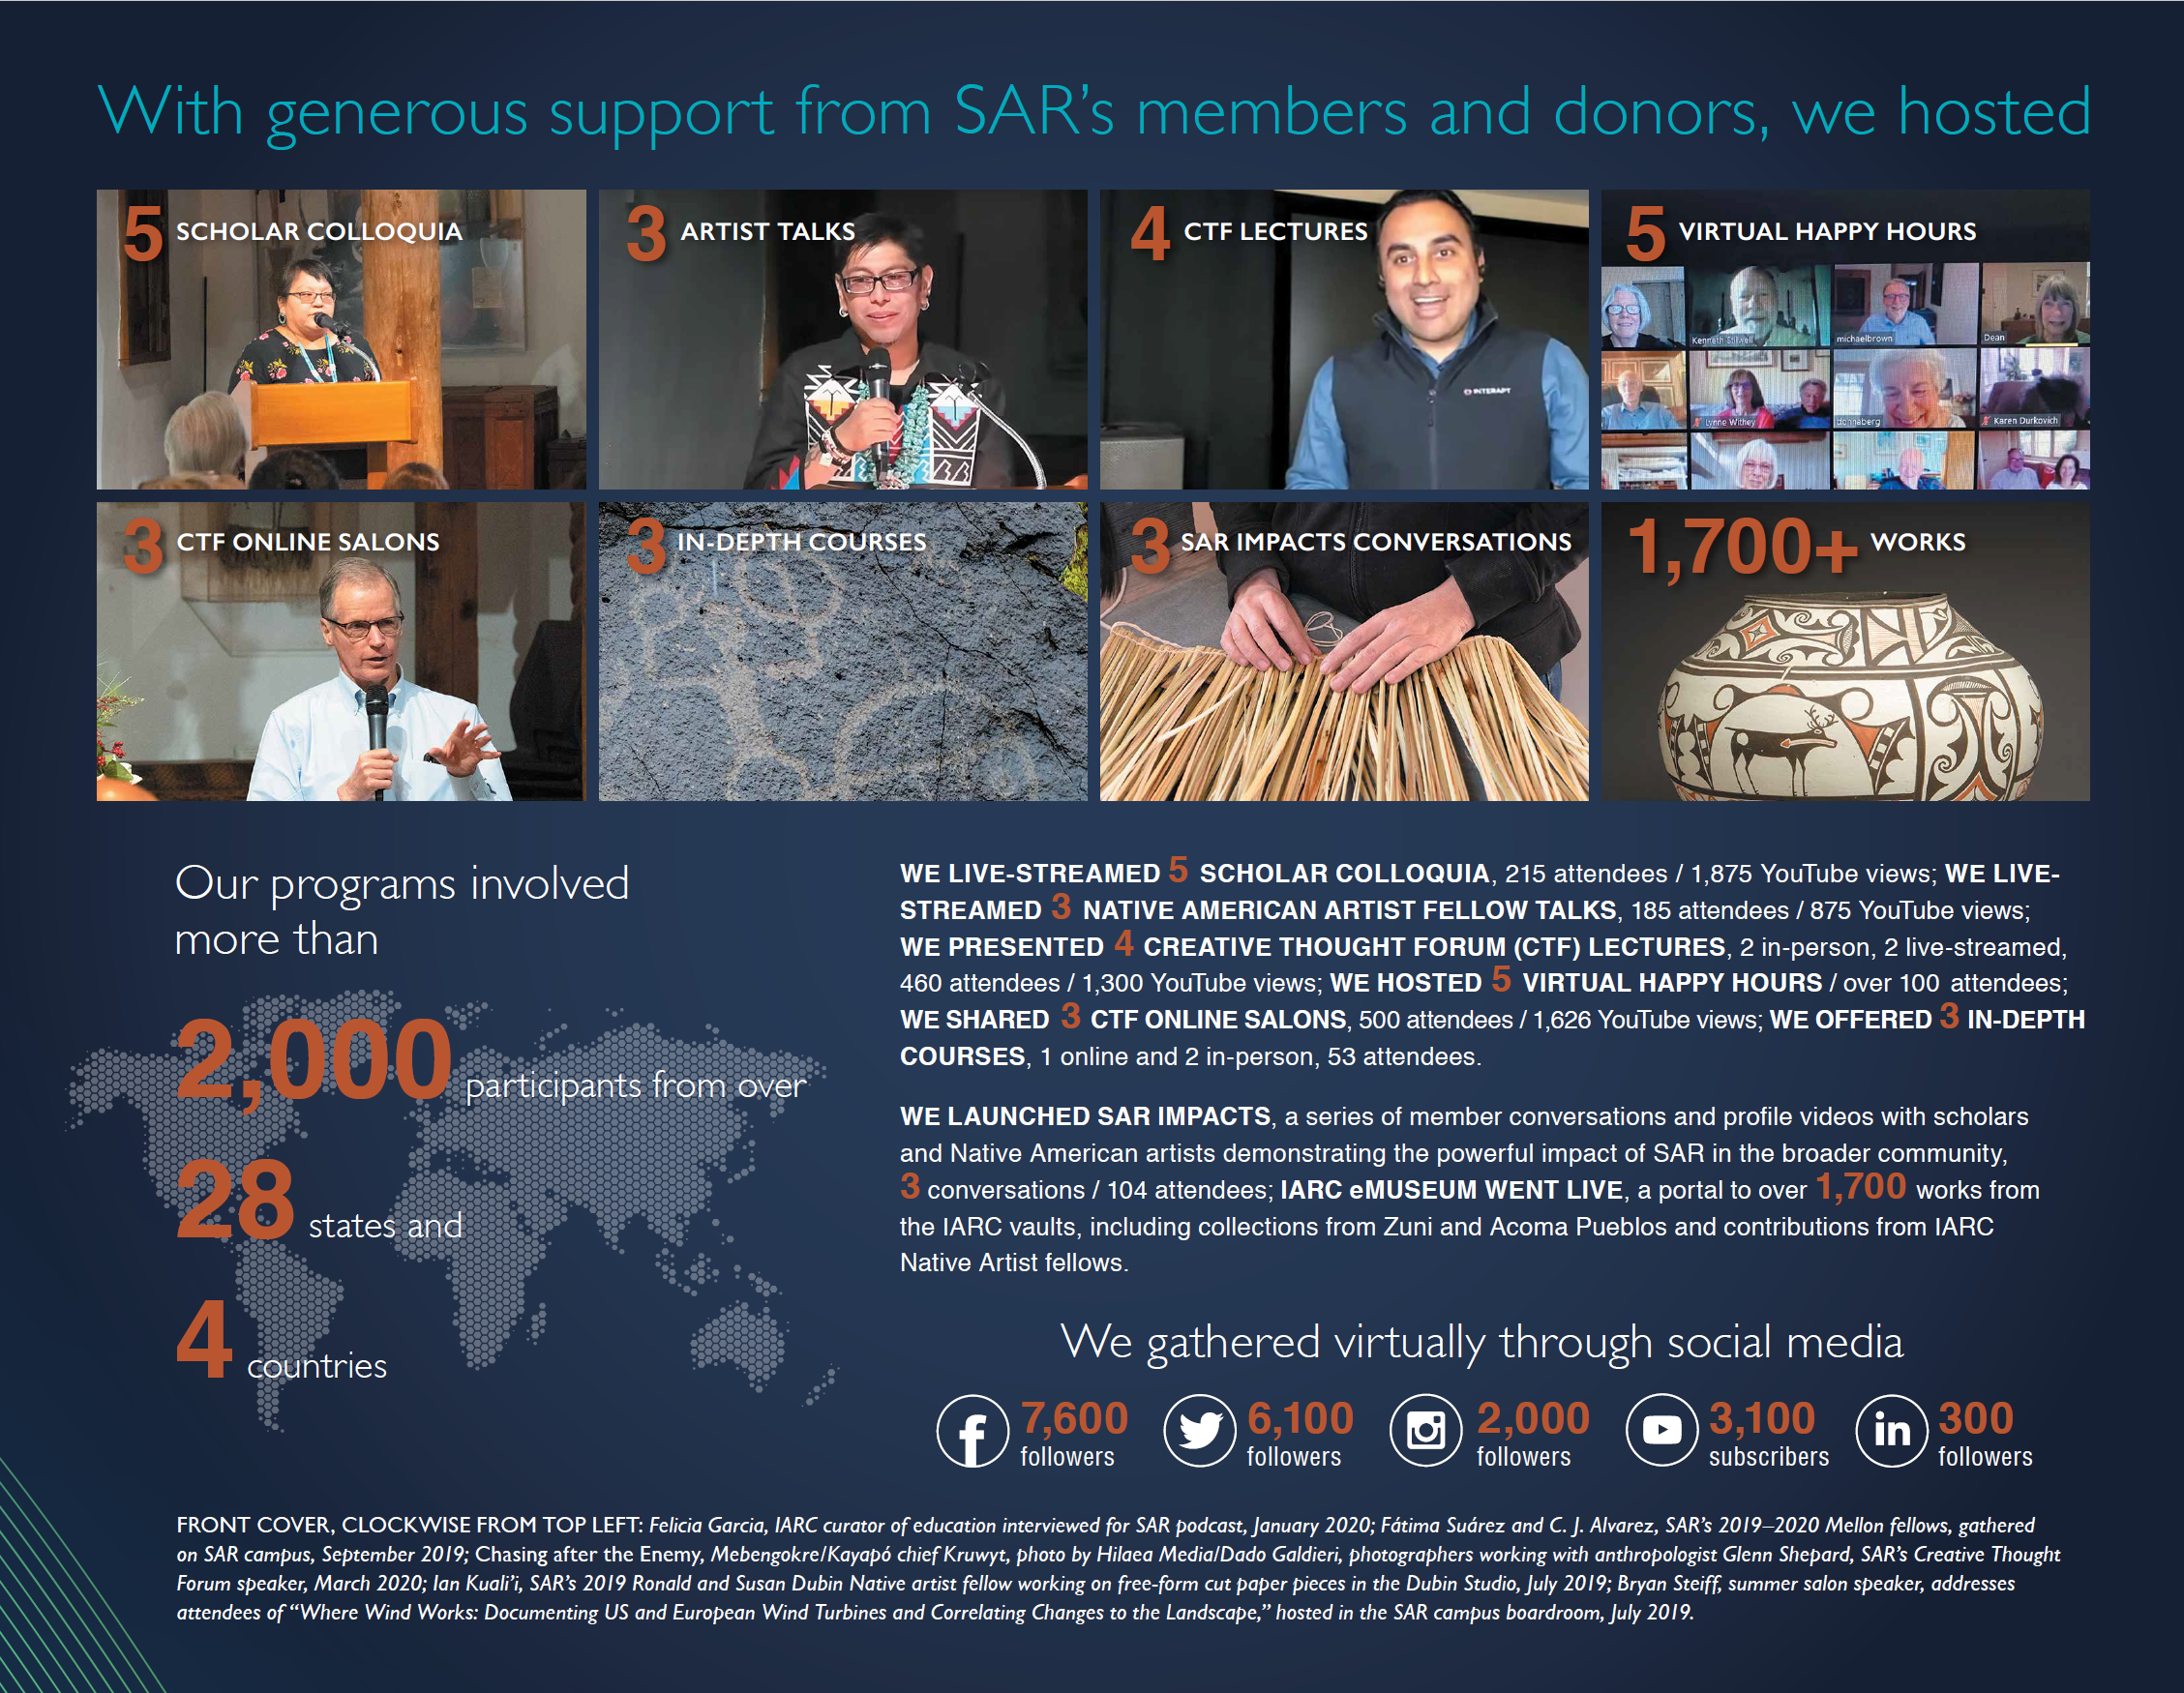 SAR Annual Report Stats